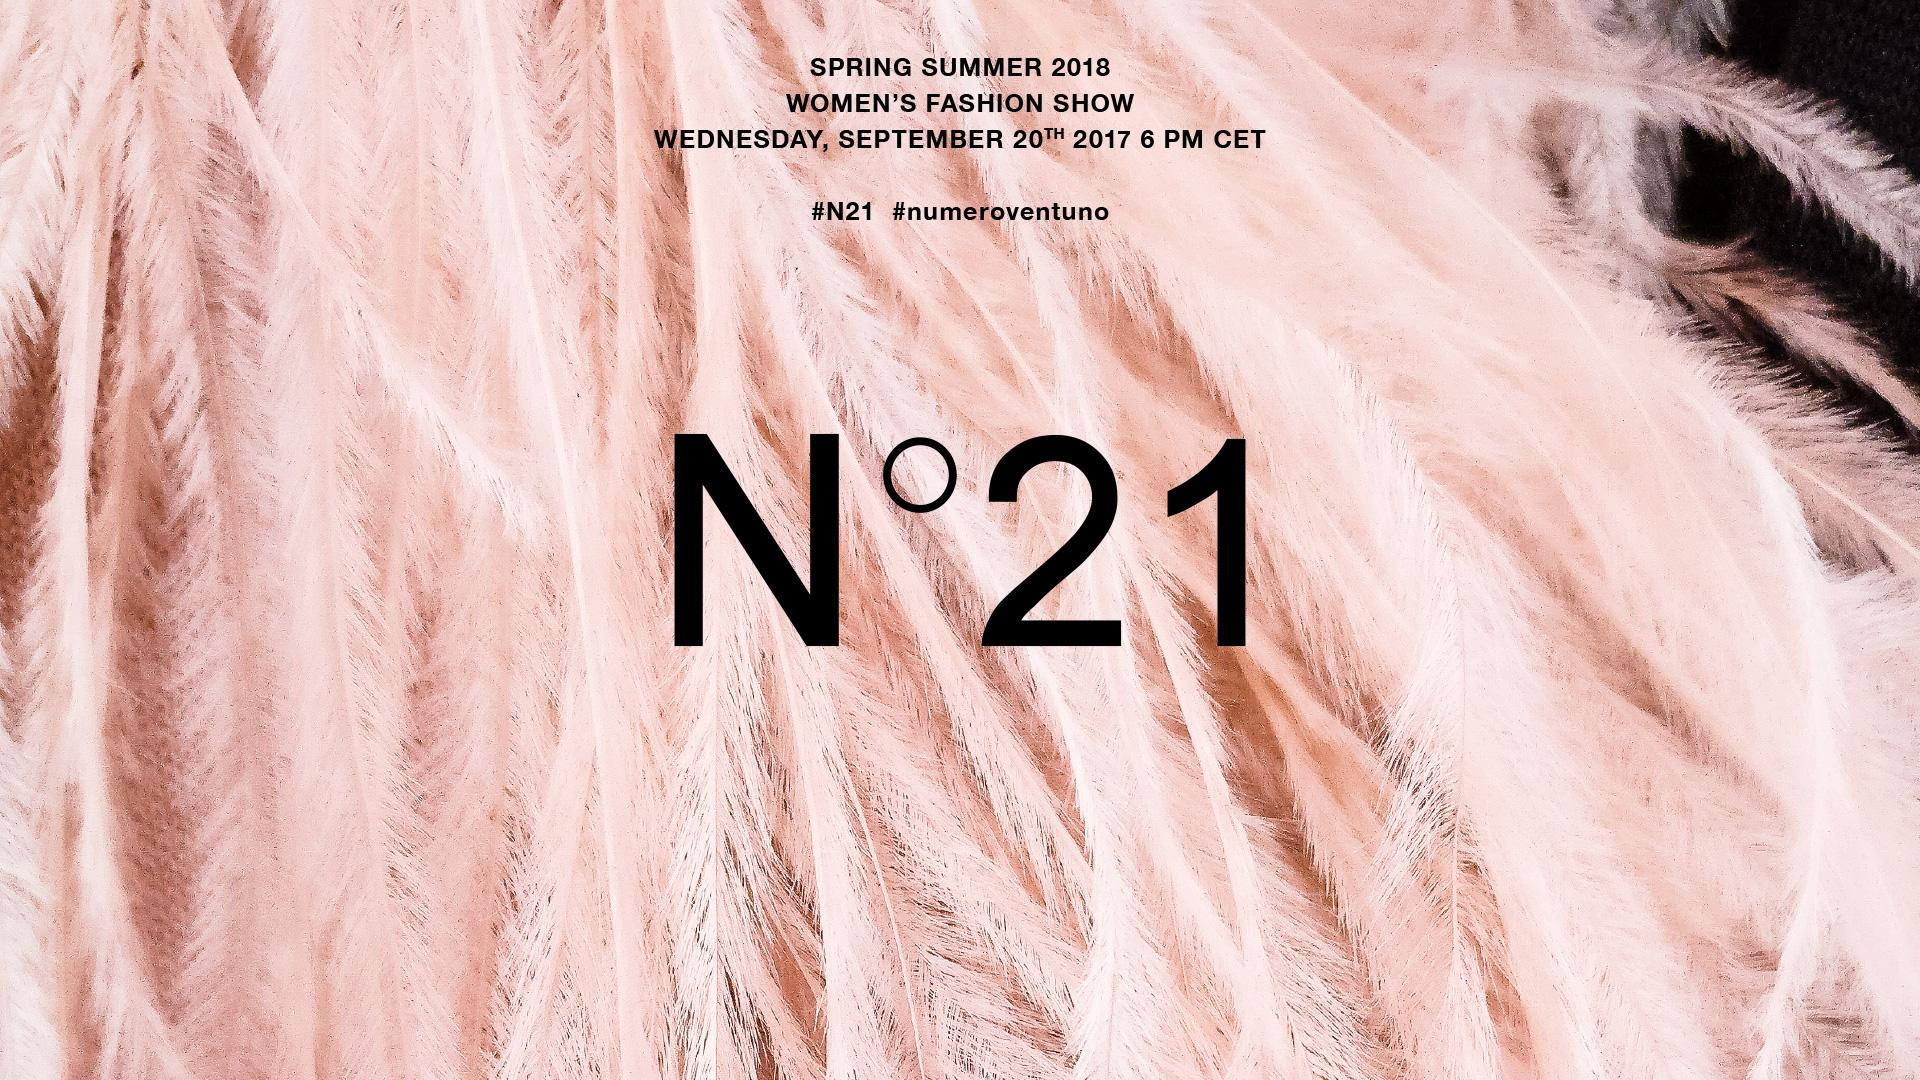 N°21 Spring Summer 2018 Fashion Show Live Streaming